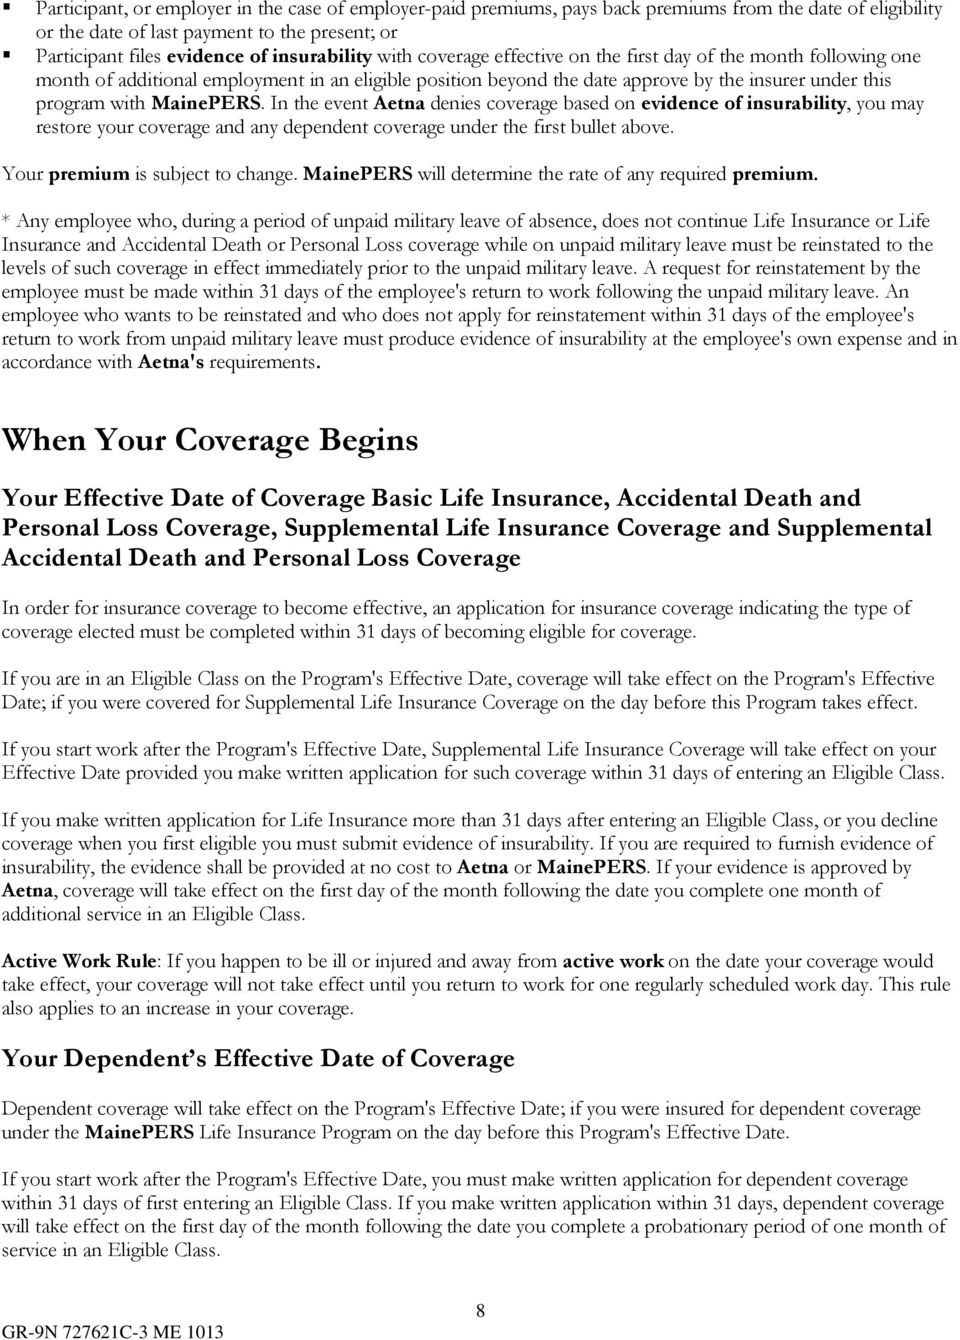 MainePERS. In the event Aetna denies coverage based on evidence of insurability, you may restore your coverage and any dependent coverage under the first bullet above.